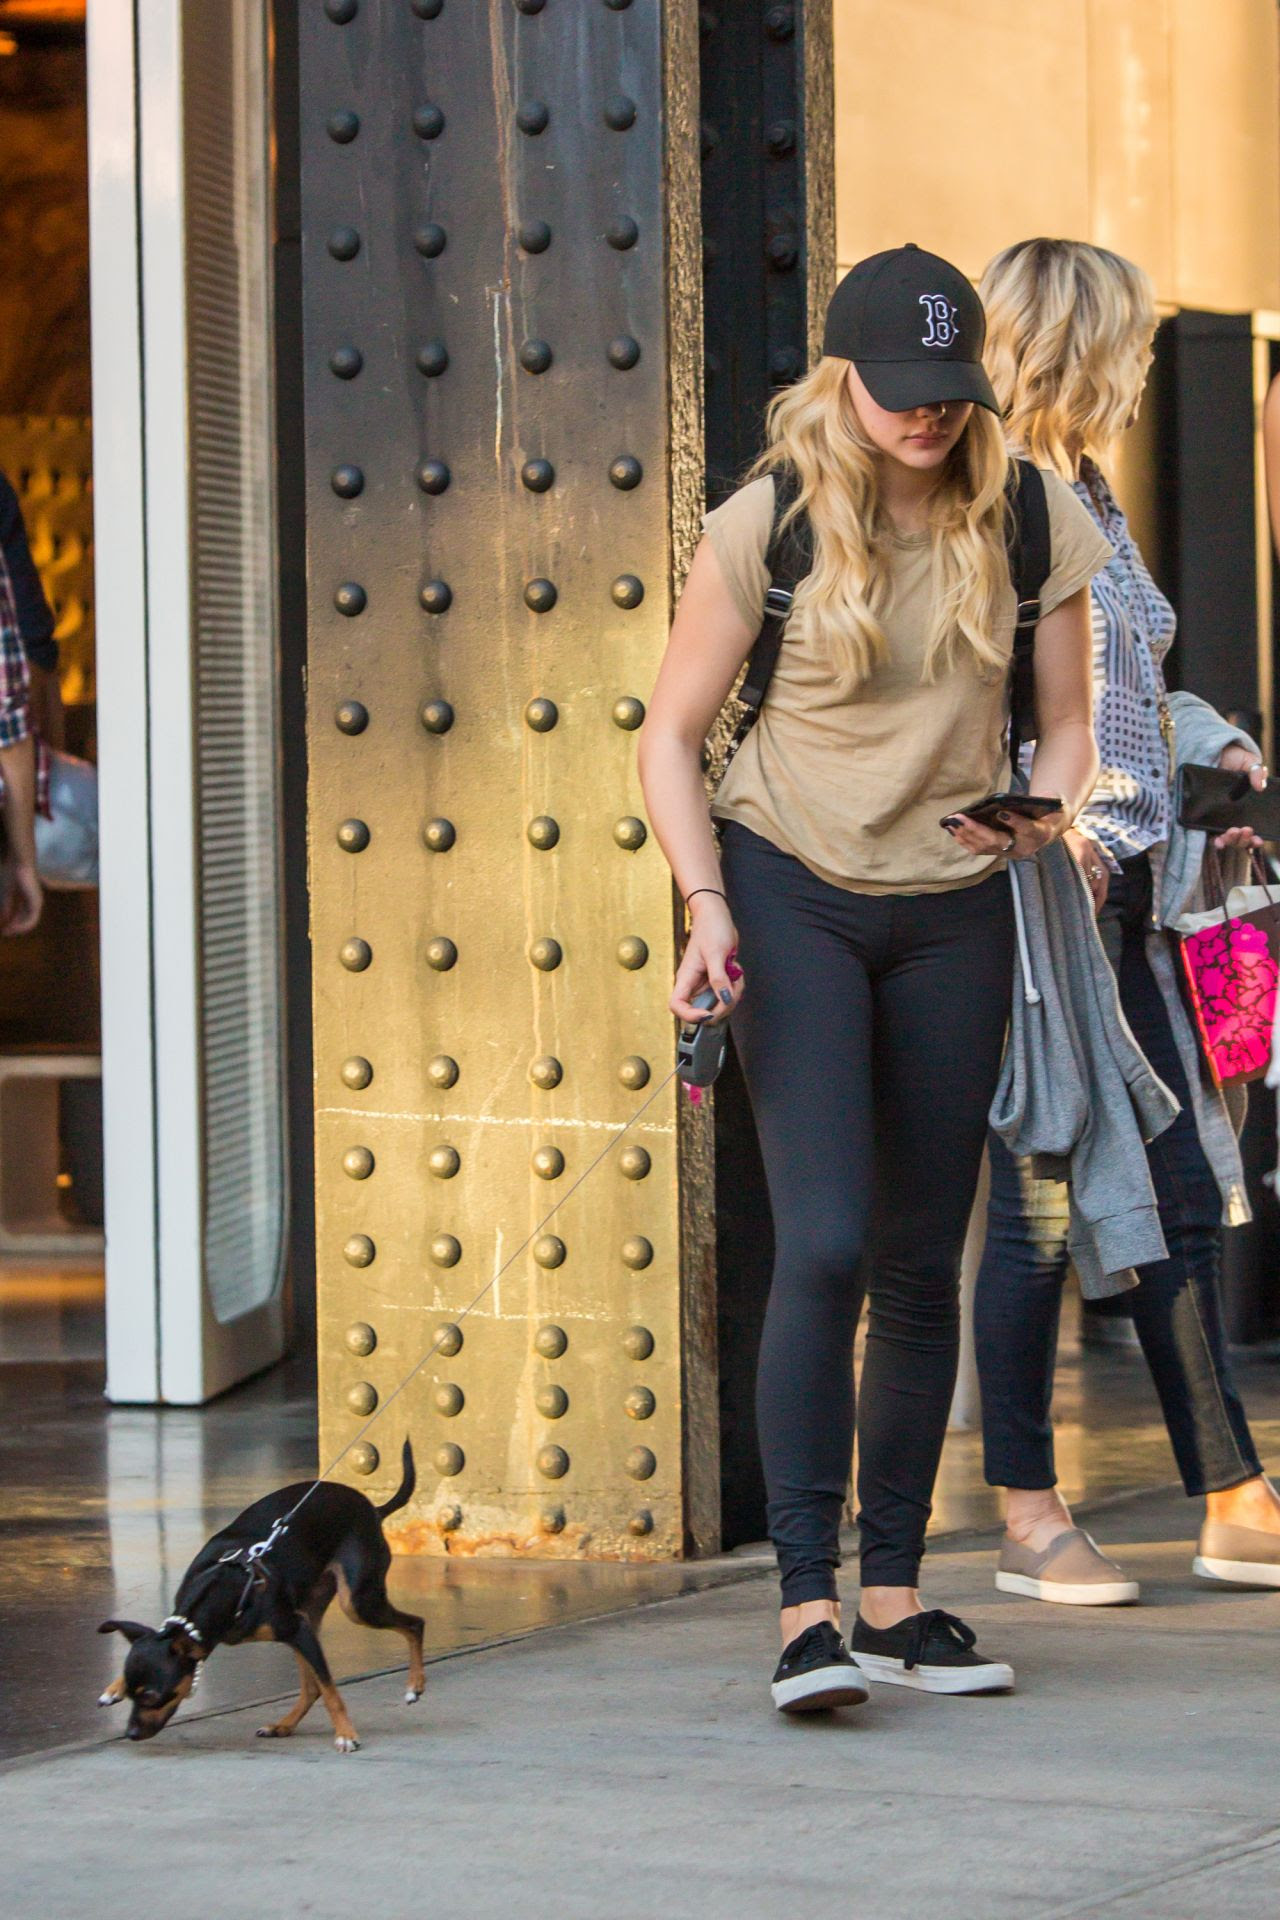 http://celebmafia.com/wp-content/uploads/2015/09/chloe-moretz-out-with-her-dog-in-nyc-september-2015_5.jpg